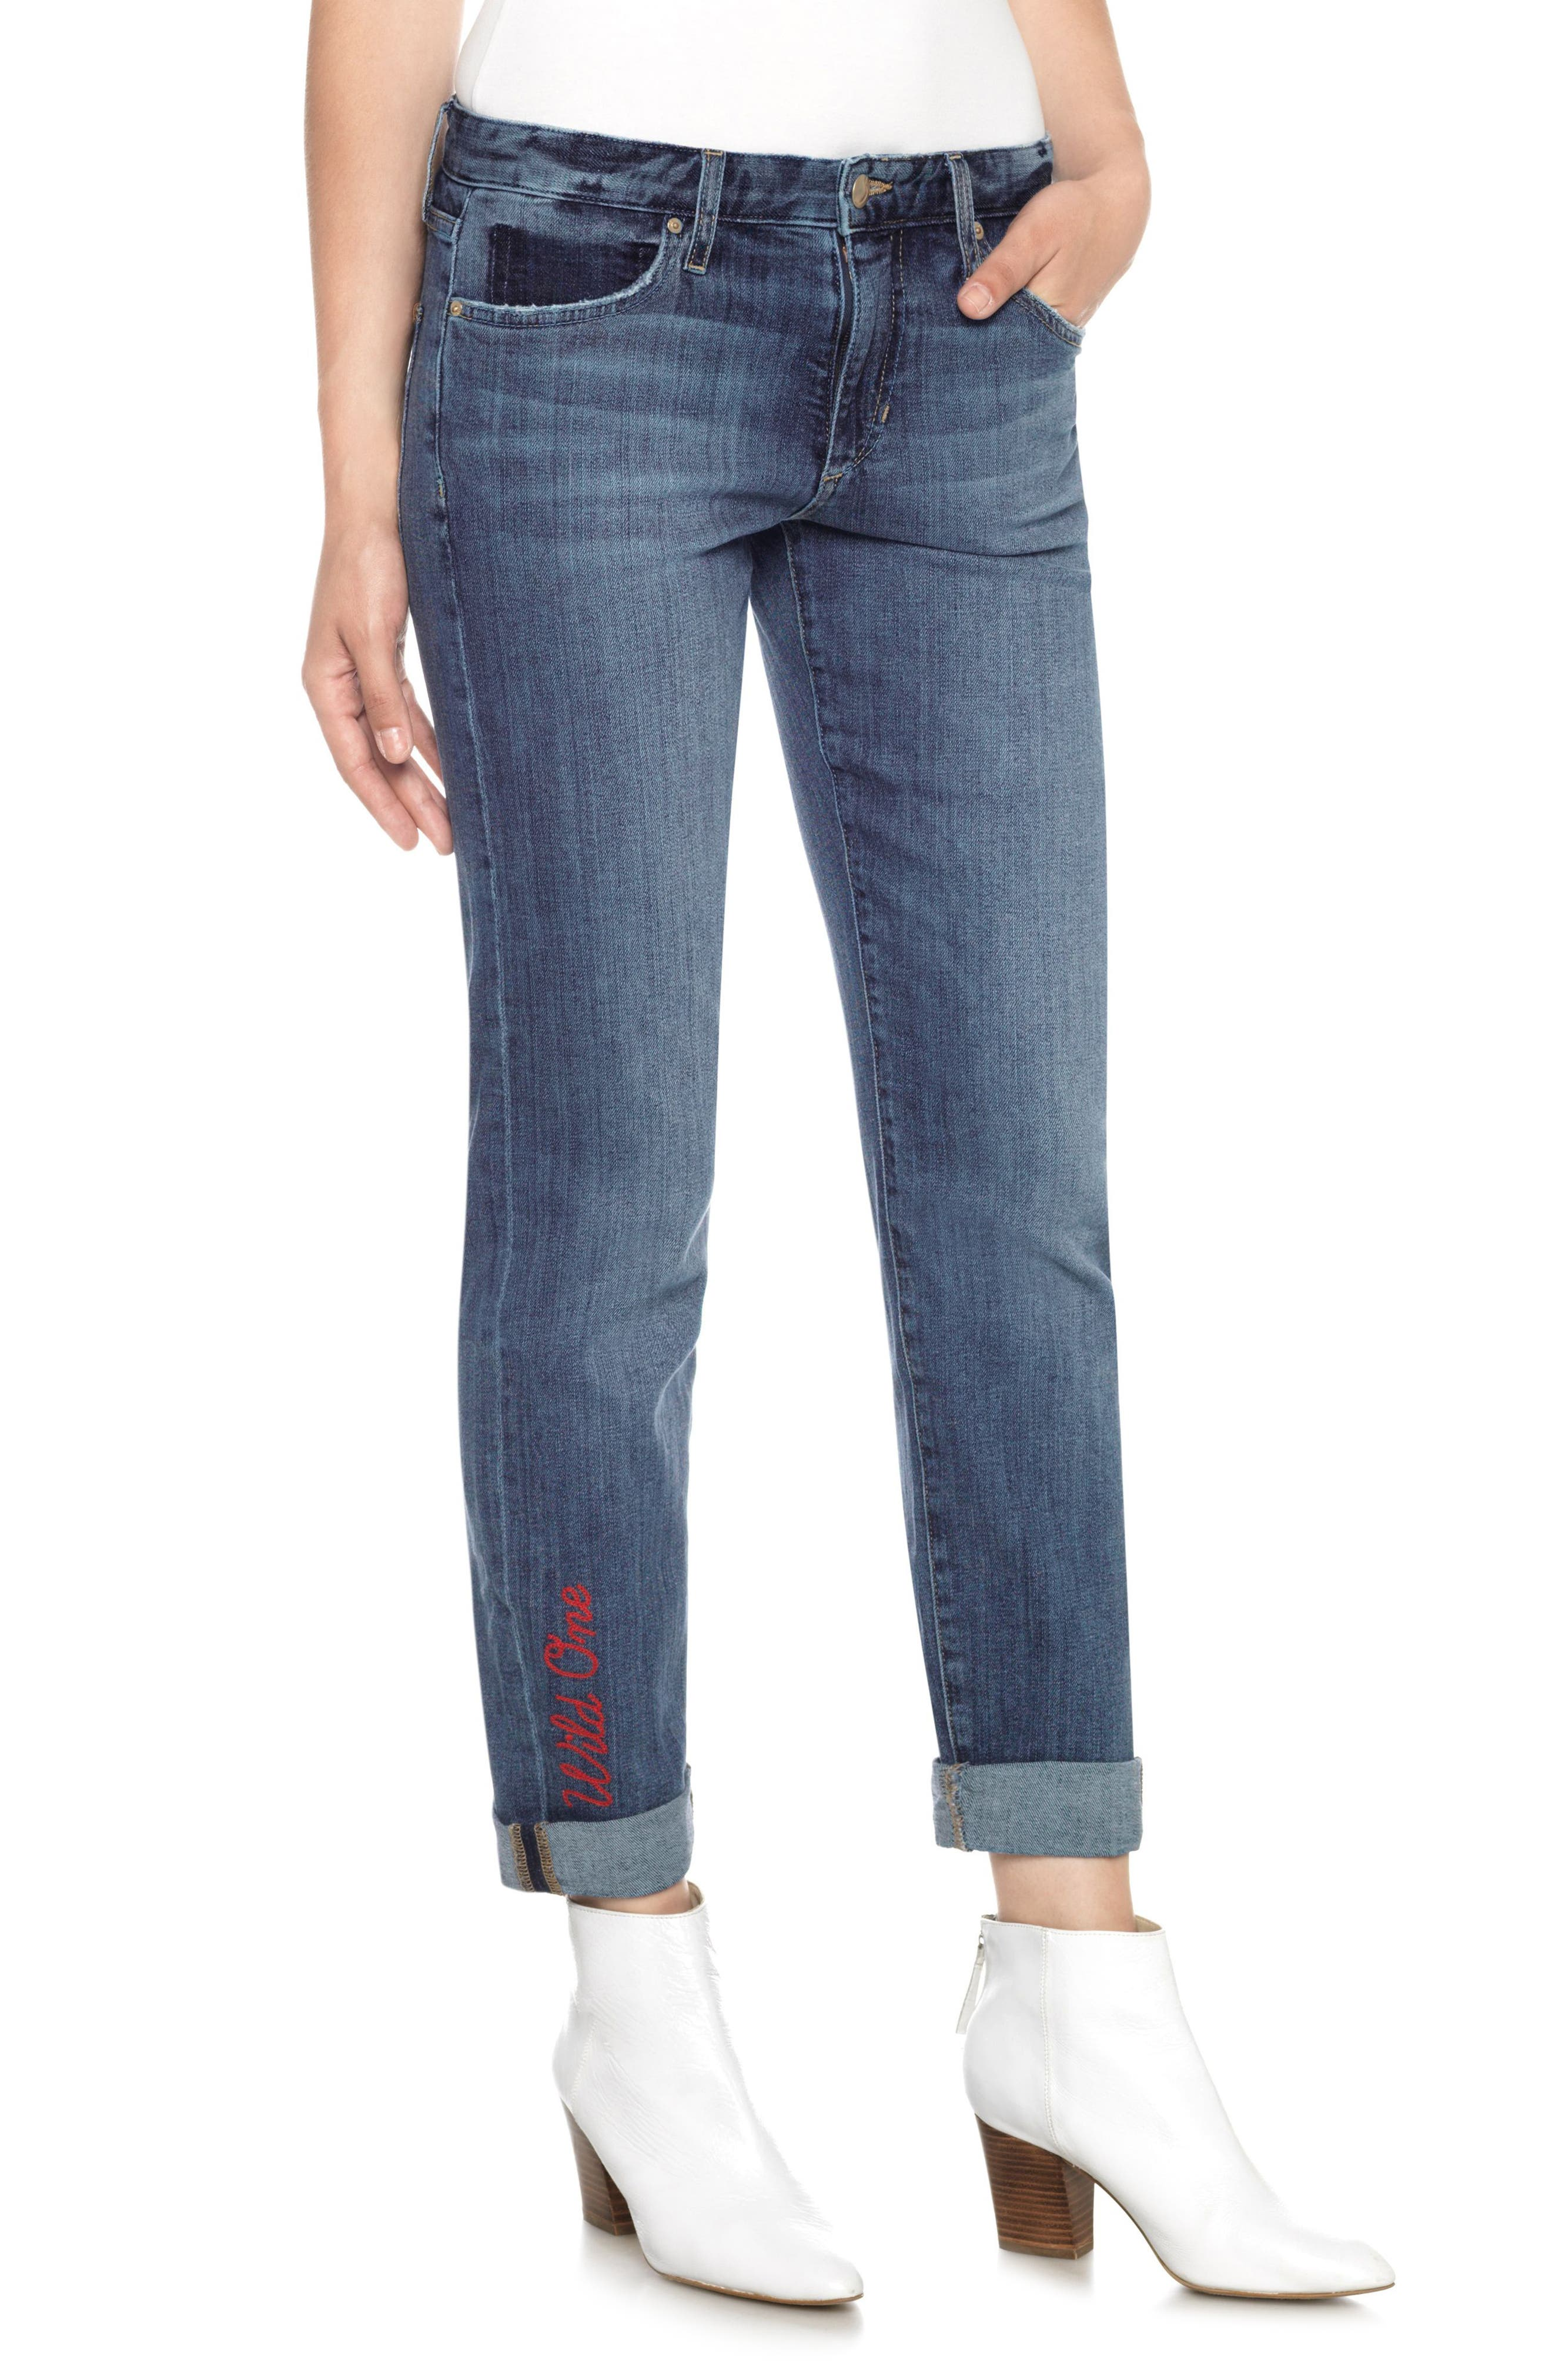 Main Image - Joe's The Smith Wild One Ankle Jeans (Clenna)